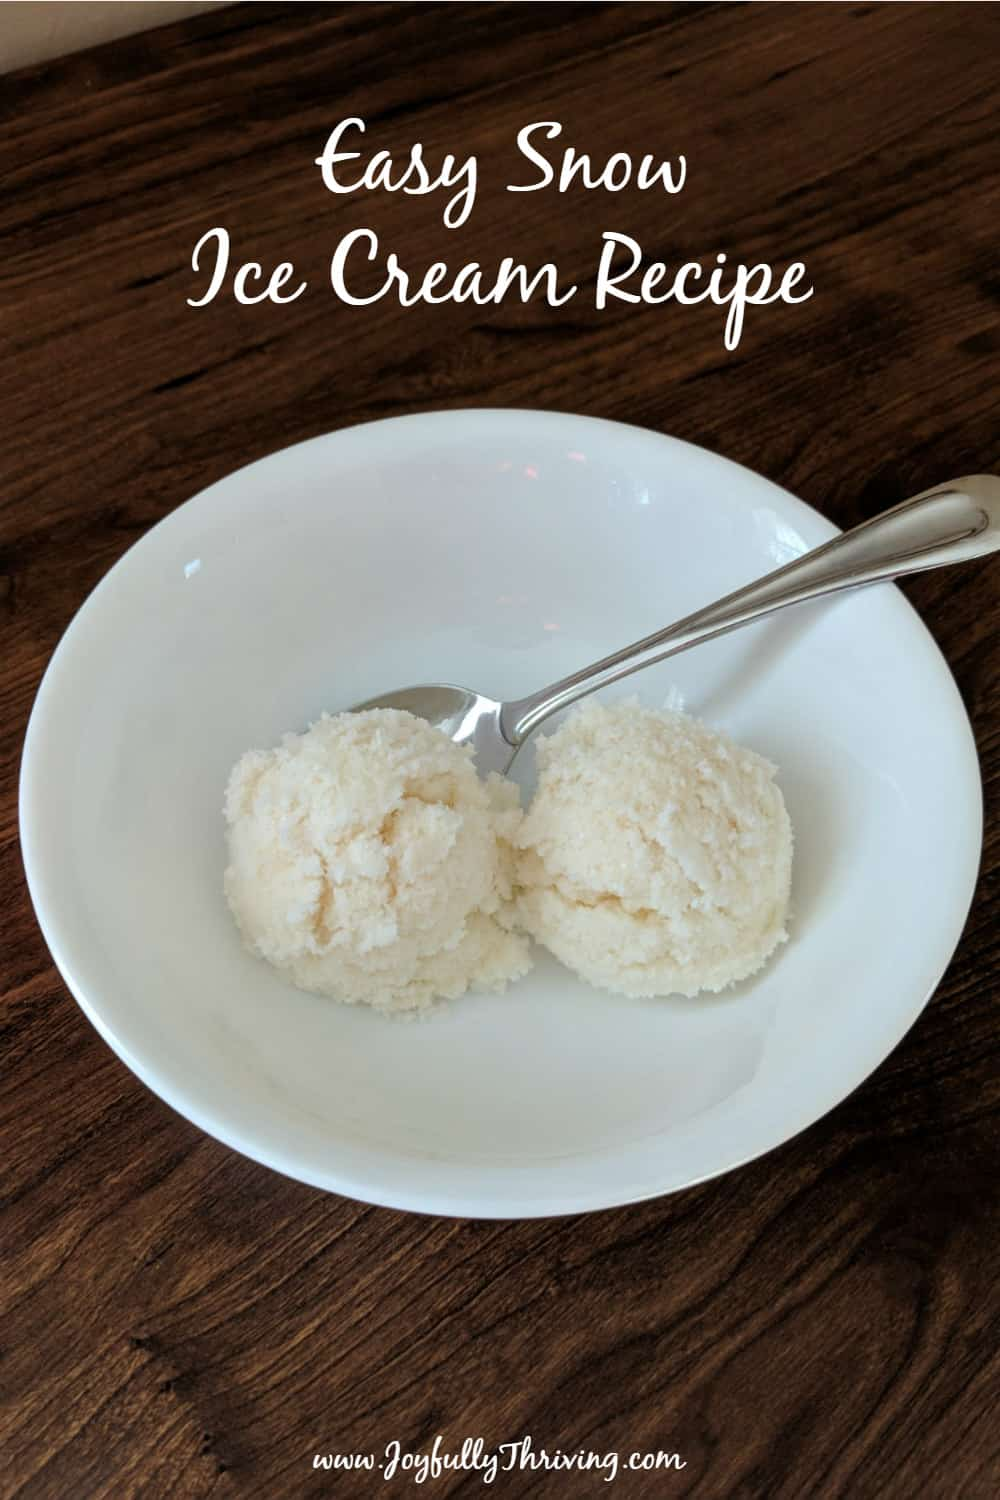 This snow ice cream recipe is so easy and absolutely delicious! Only 3 ingredients. Perfect for snow day fun! #snowday